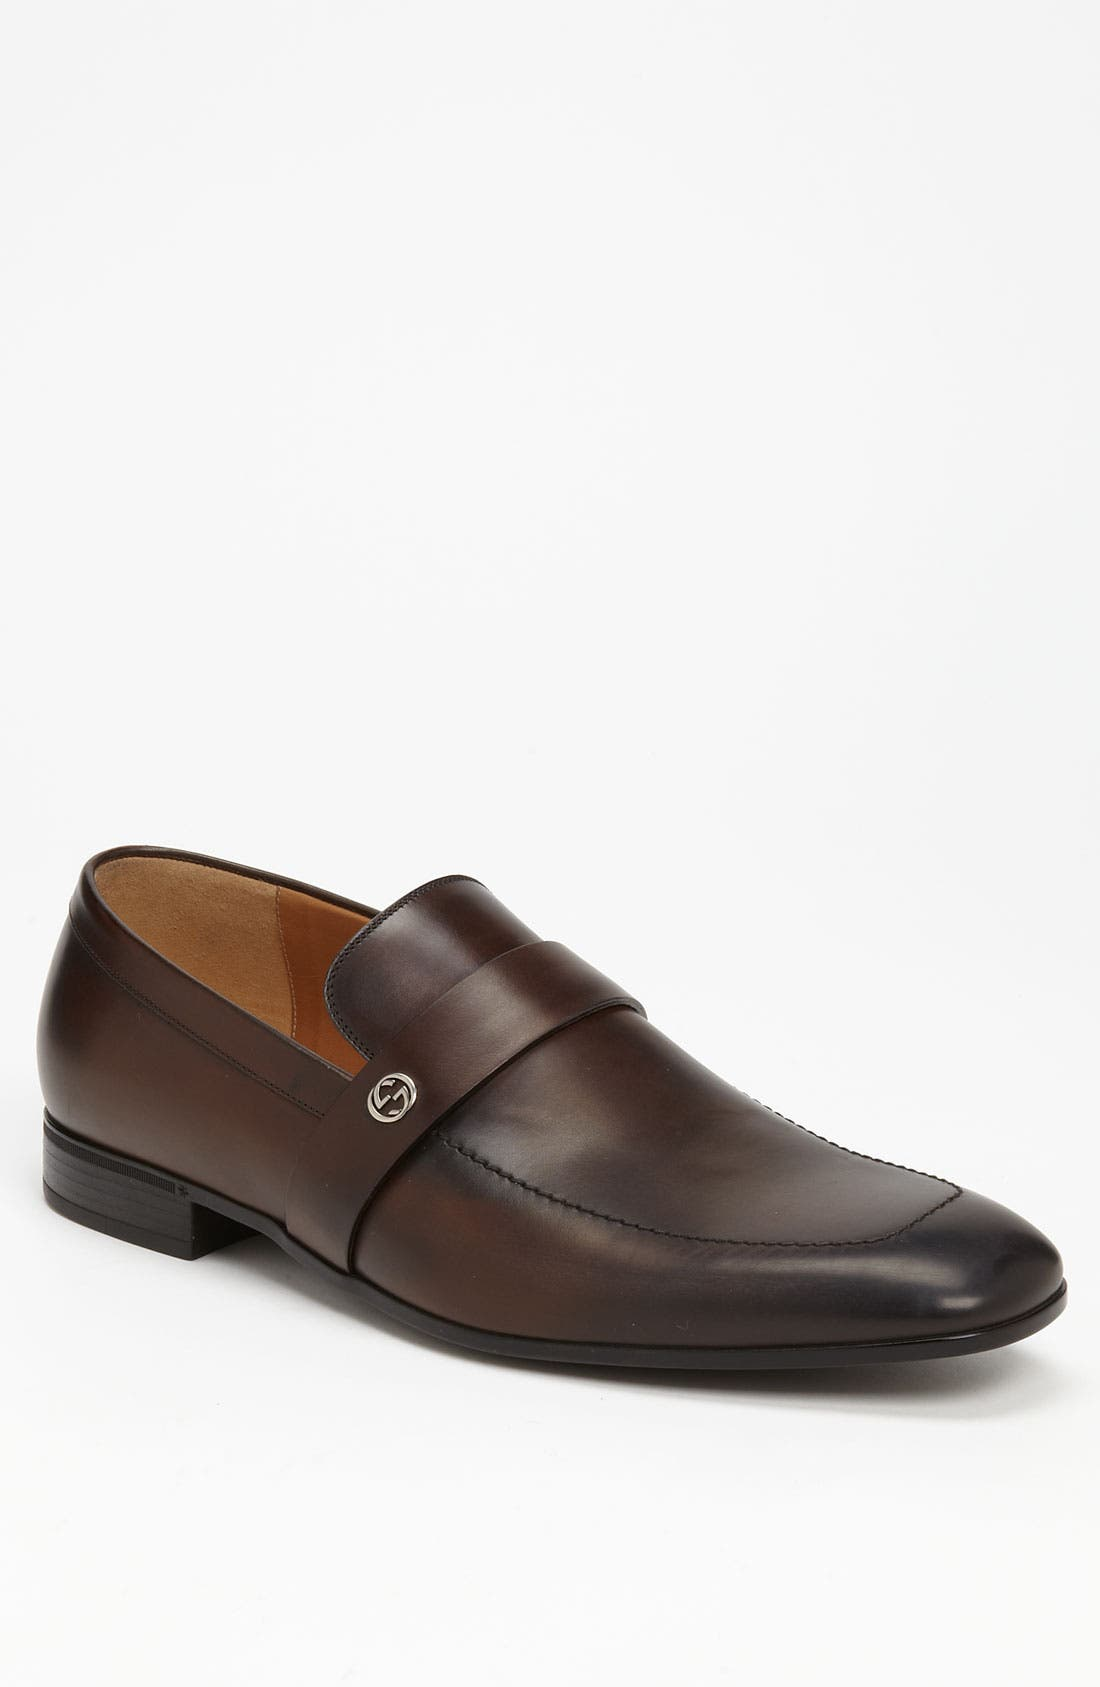 Main Image - Gucci 'Dynamics' Loafer